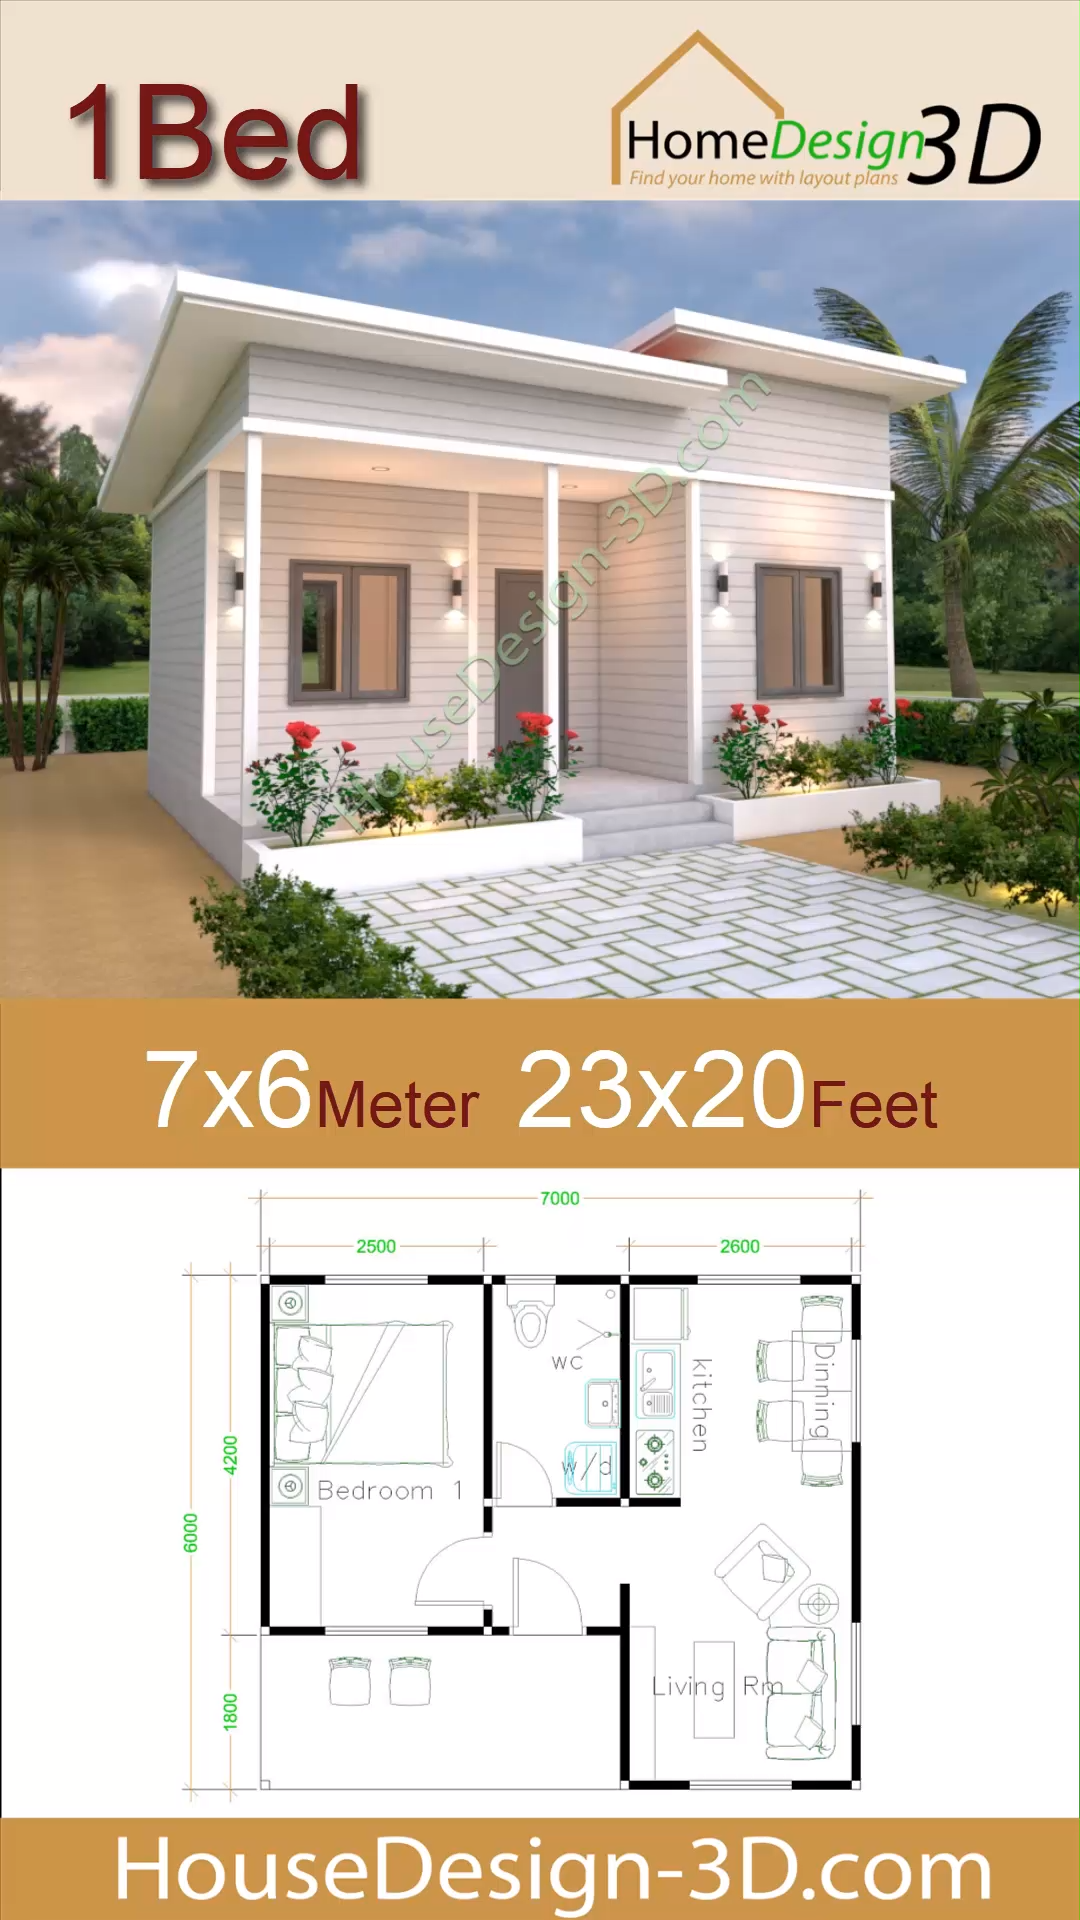 House Plans 7x6 With One Bedroom Shed Roof Video Small House Design House Plans House Plans Farmhouse